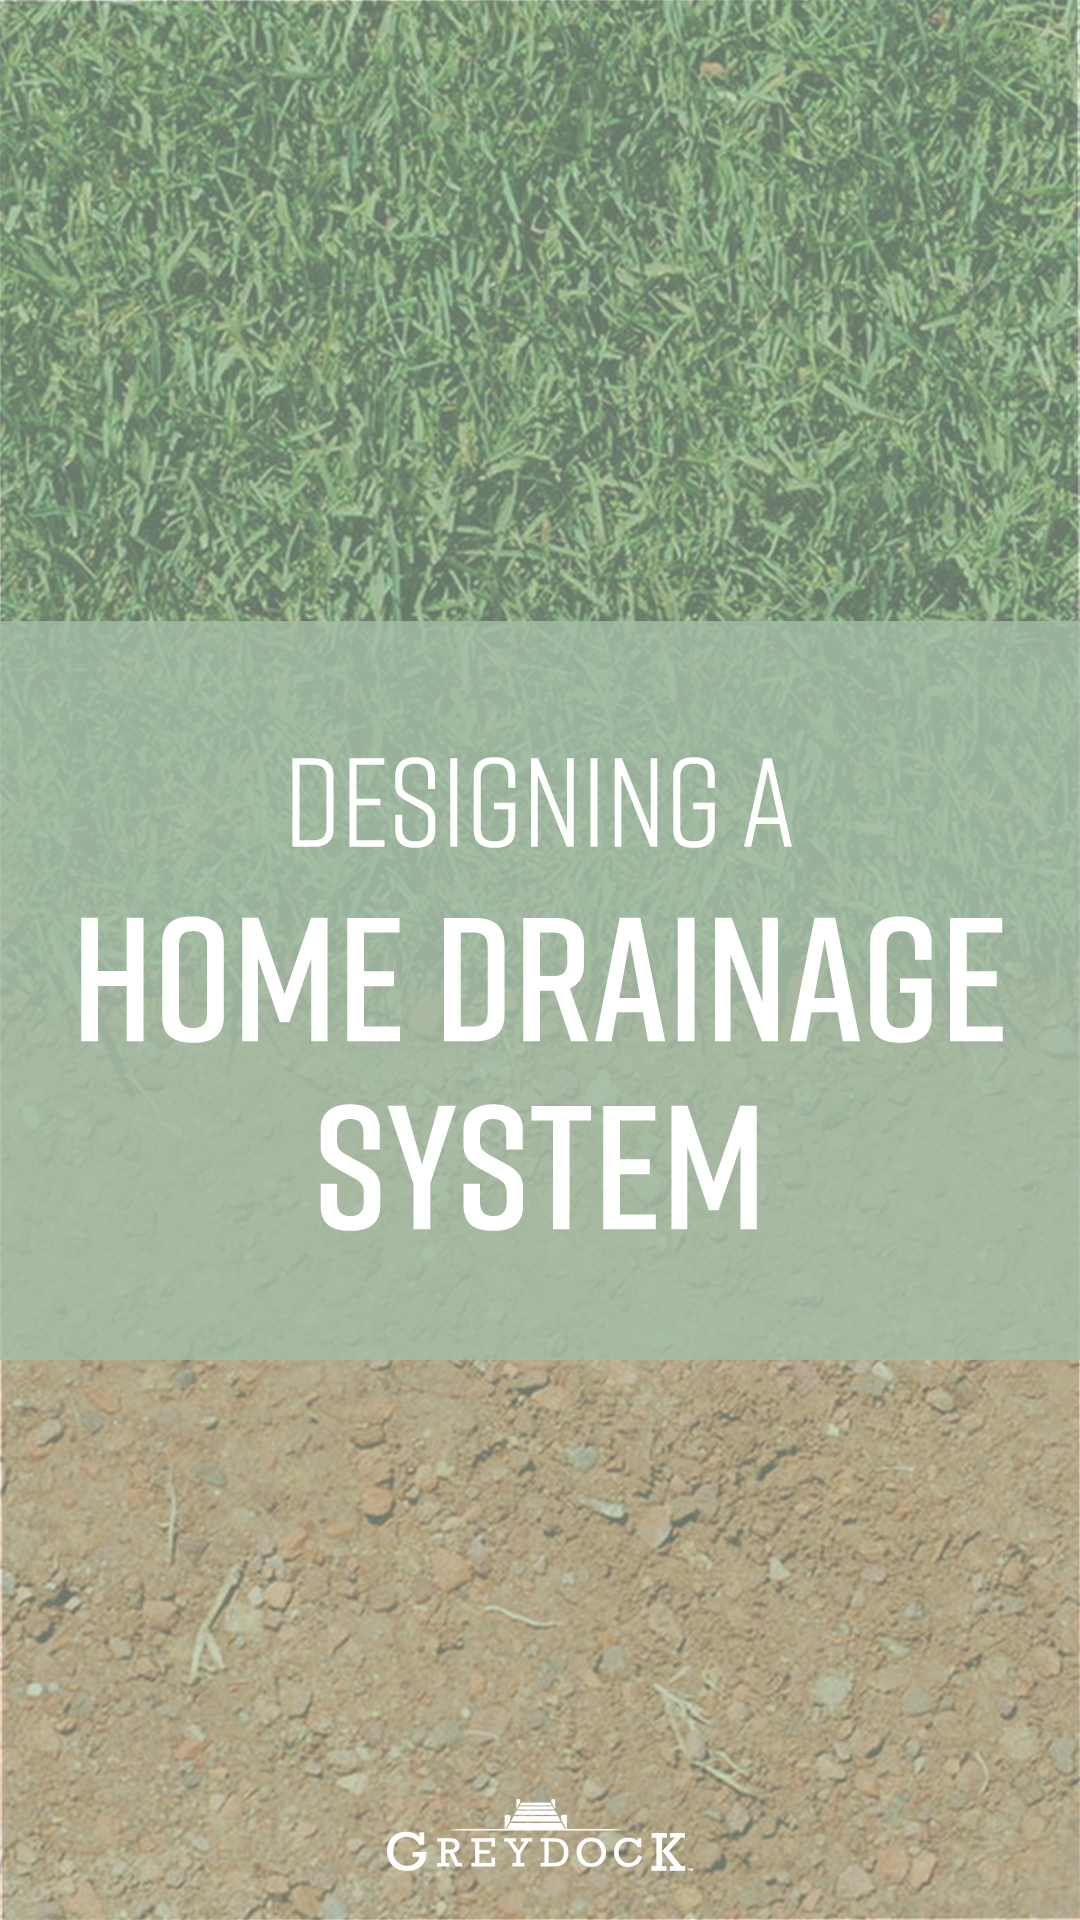 Designing A Home Drainage System Which Solution Is Best Drainage Solutions Yard Drainage Rain Water Collection System